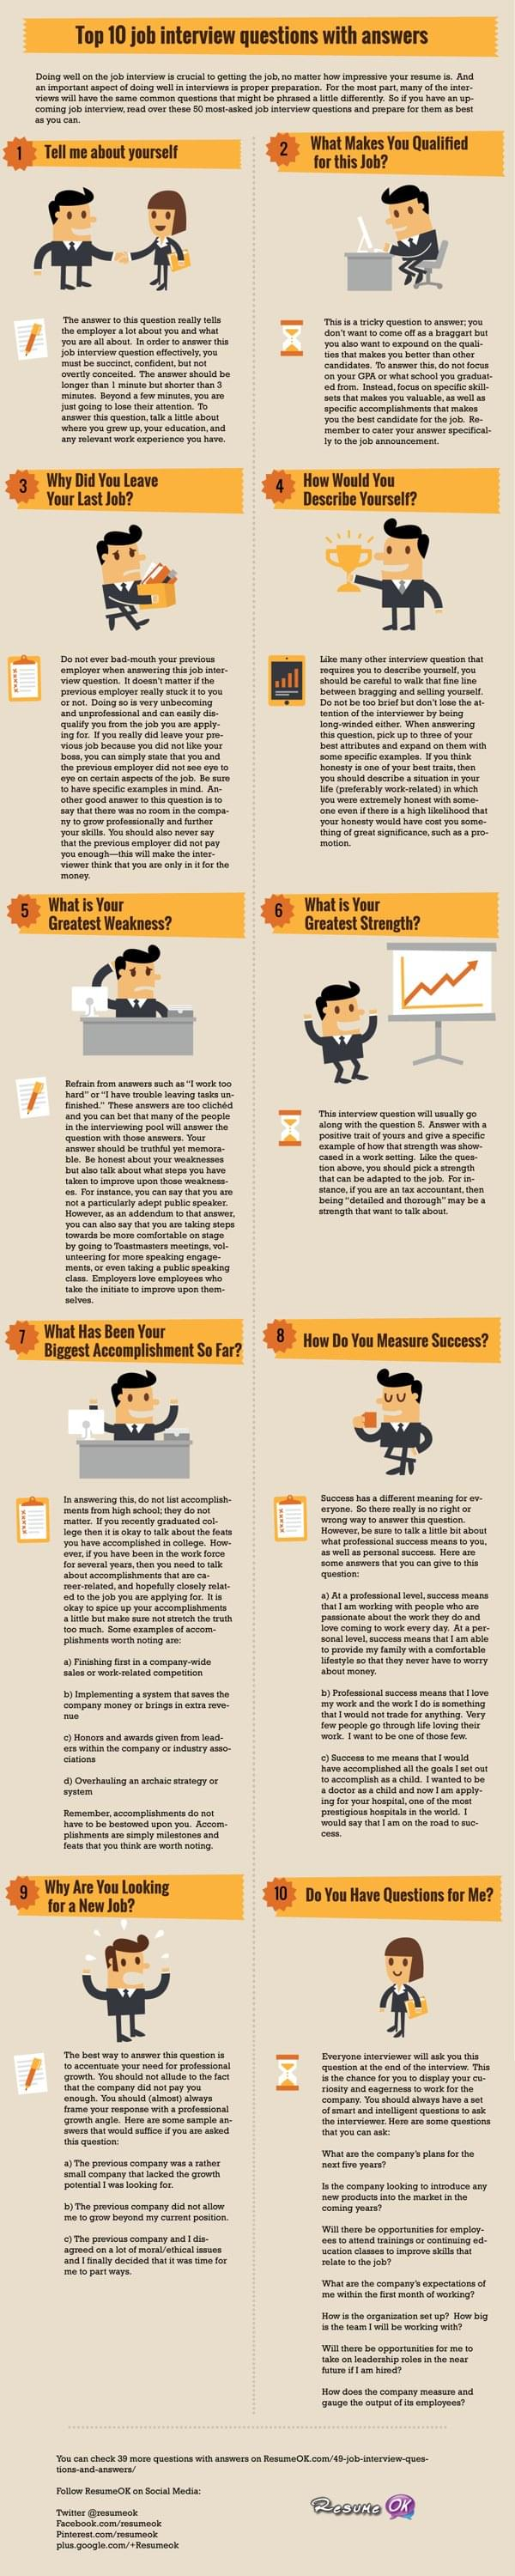 top job interview questions answers